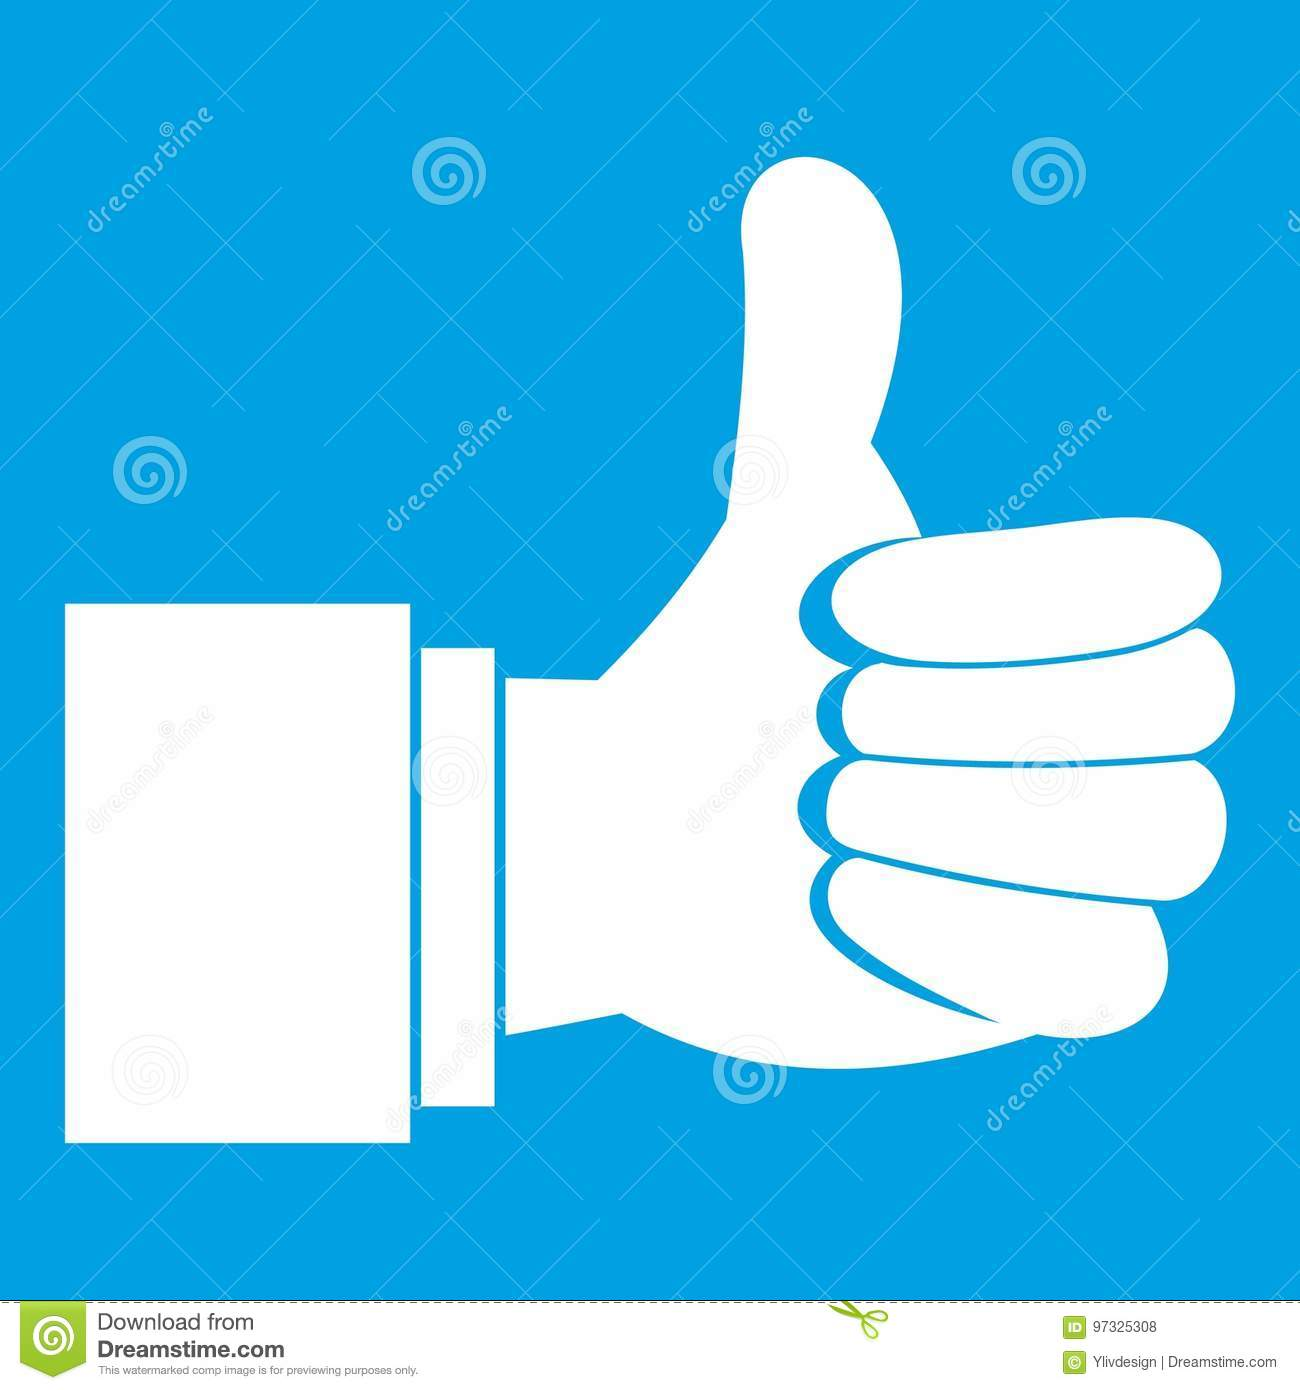 Thumb Up Gesture Icon White Stock Vector - Illustration of nice